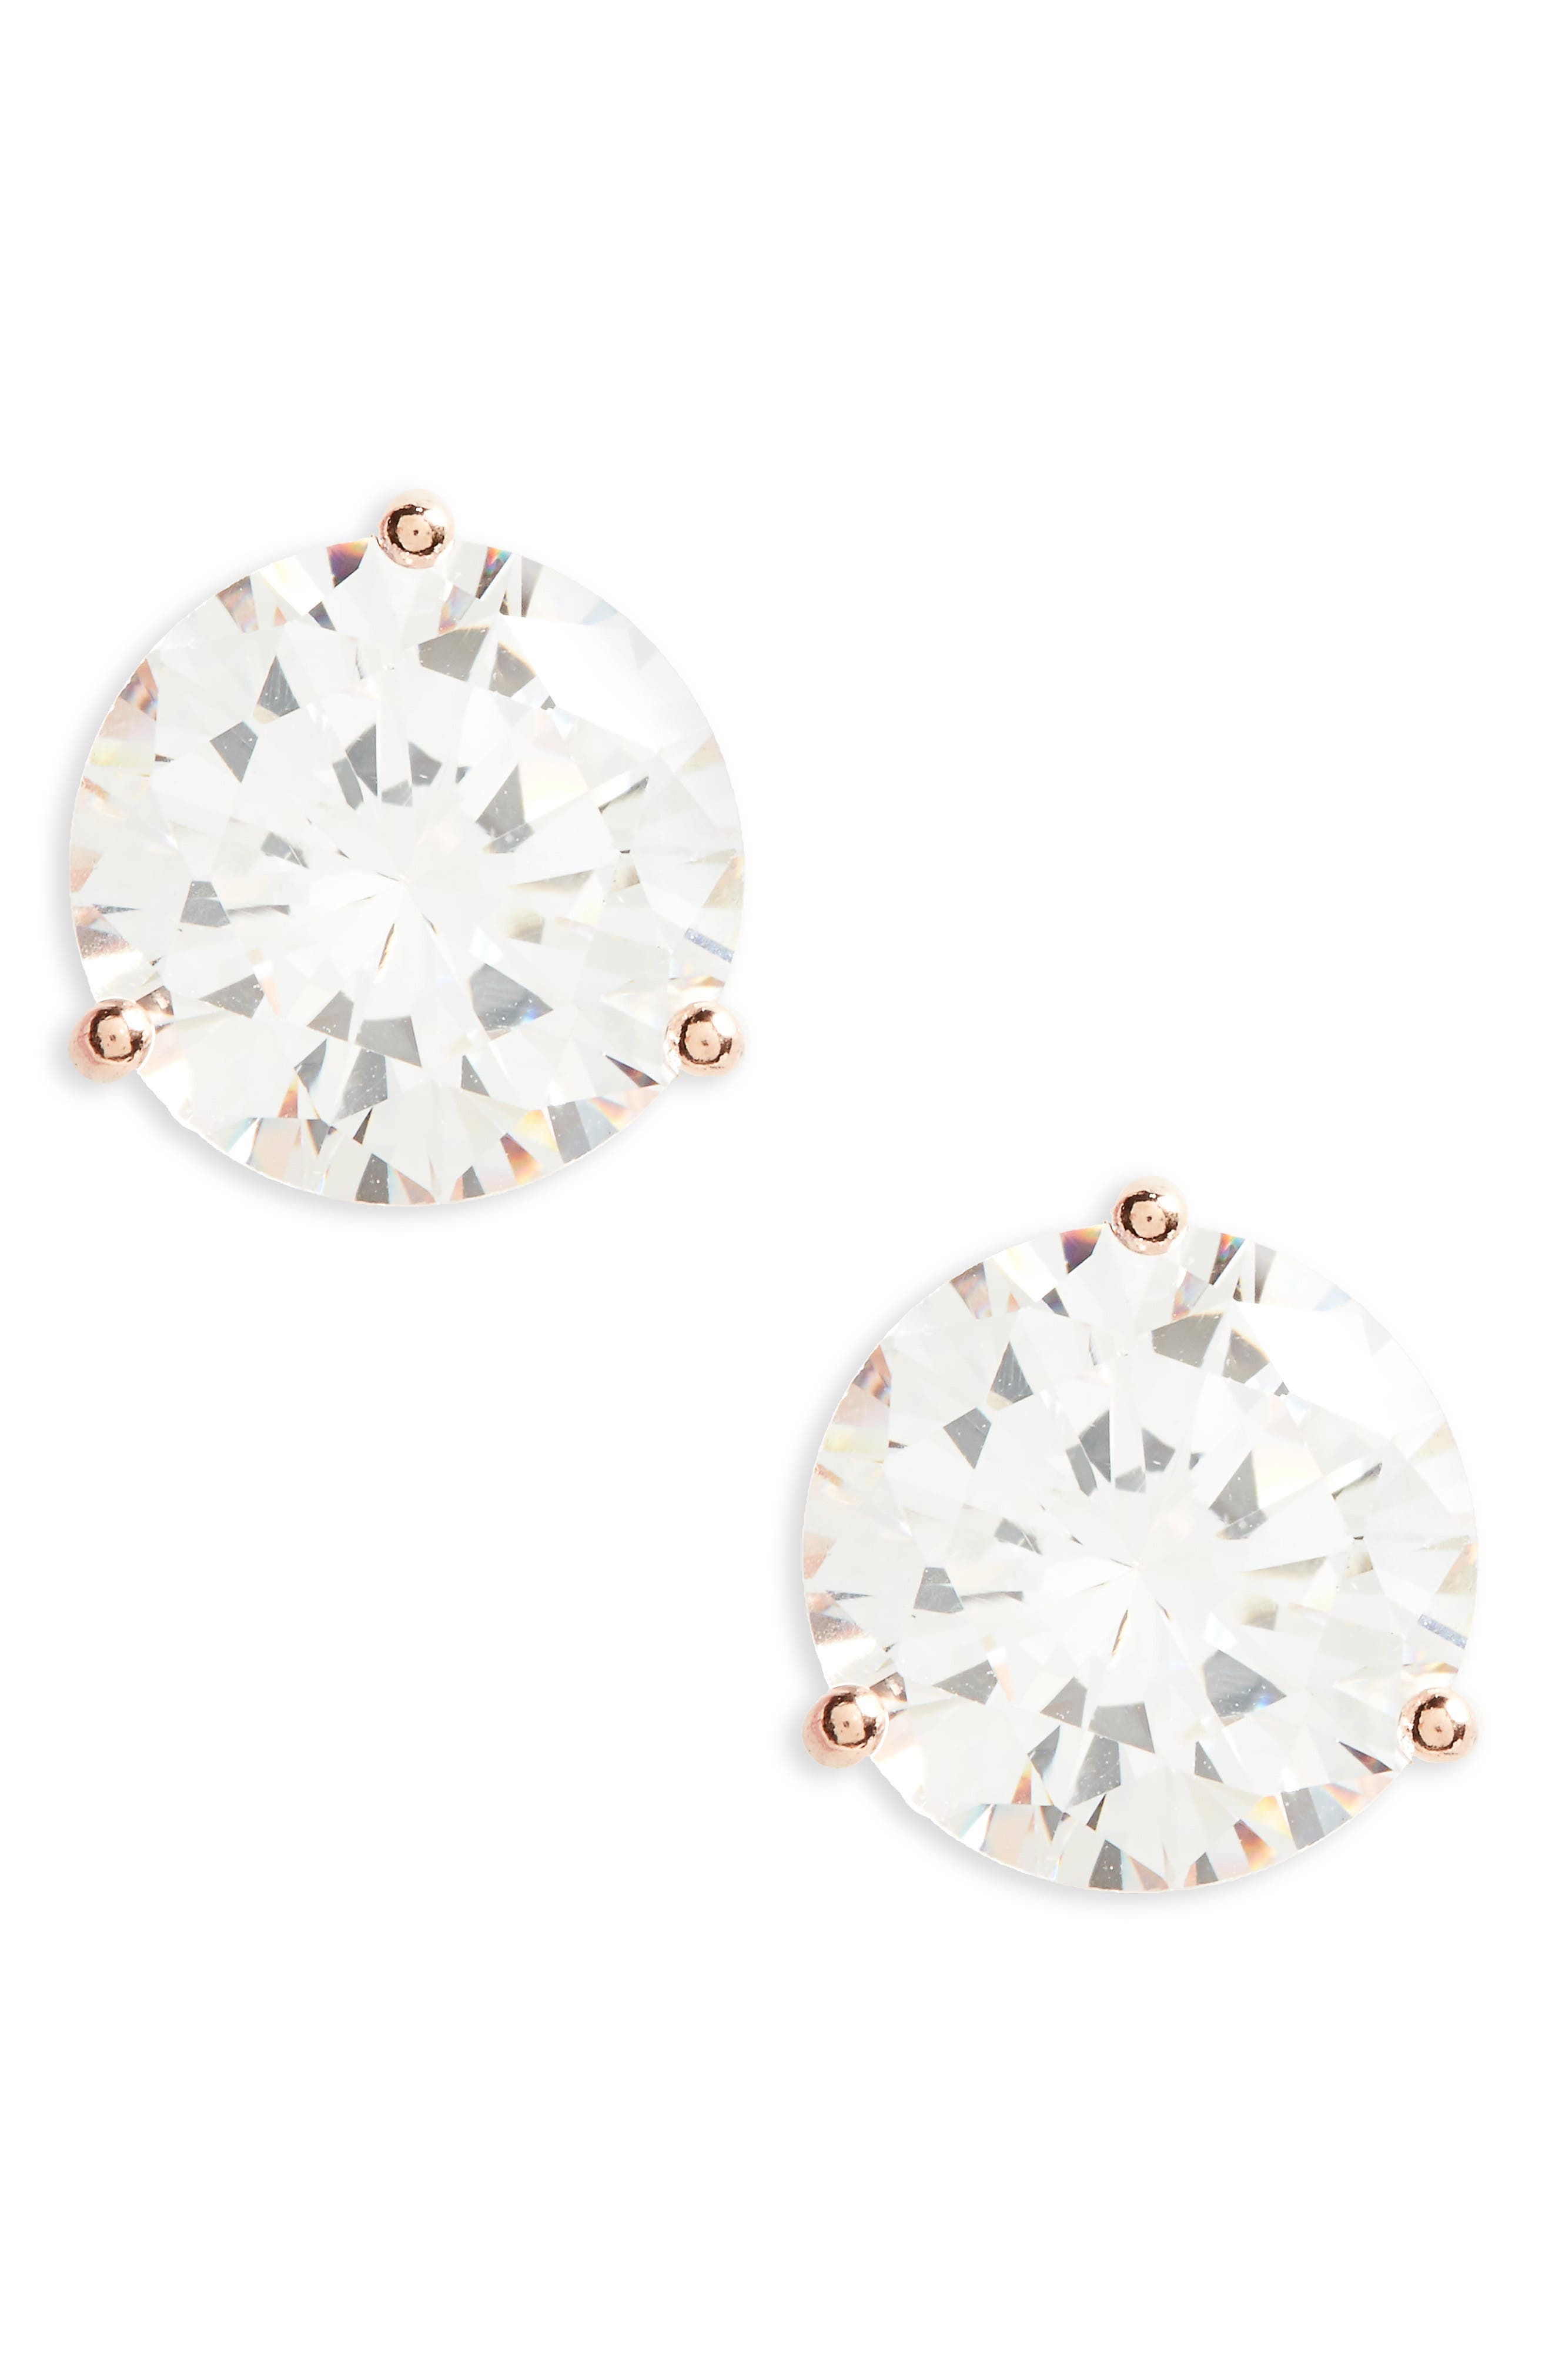 8ct tw Cubic Zirconia Stud Earrings,                         Main,                         color, Clear- Rose Gold